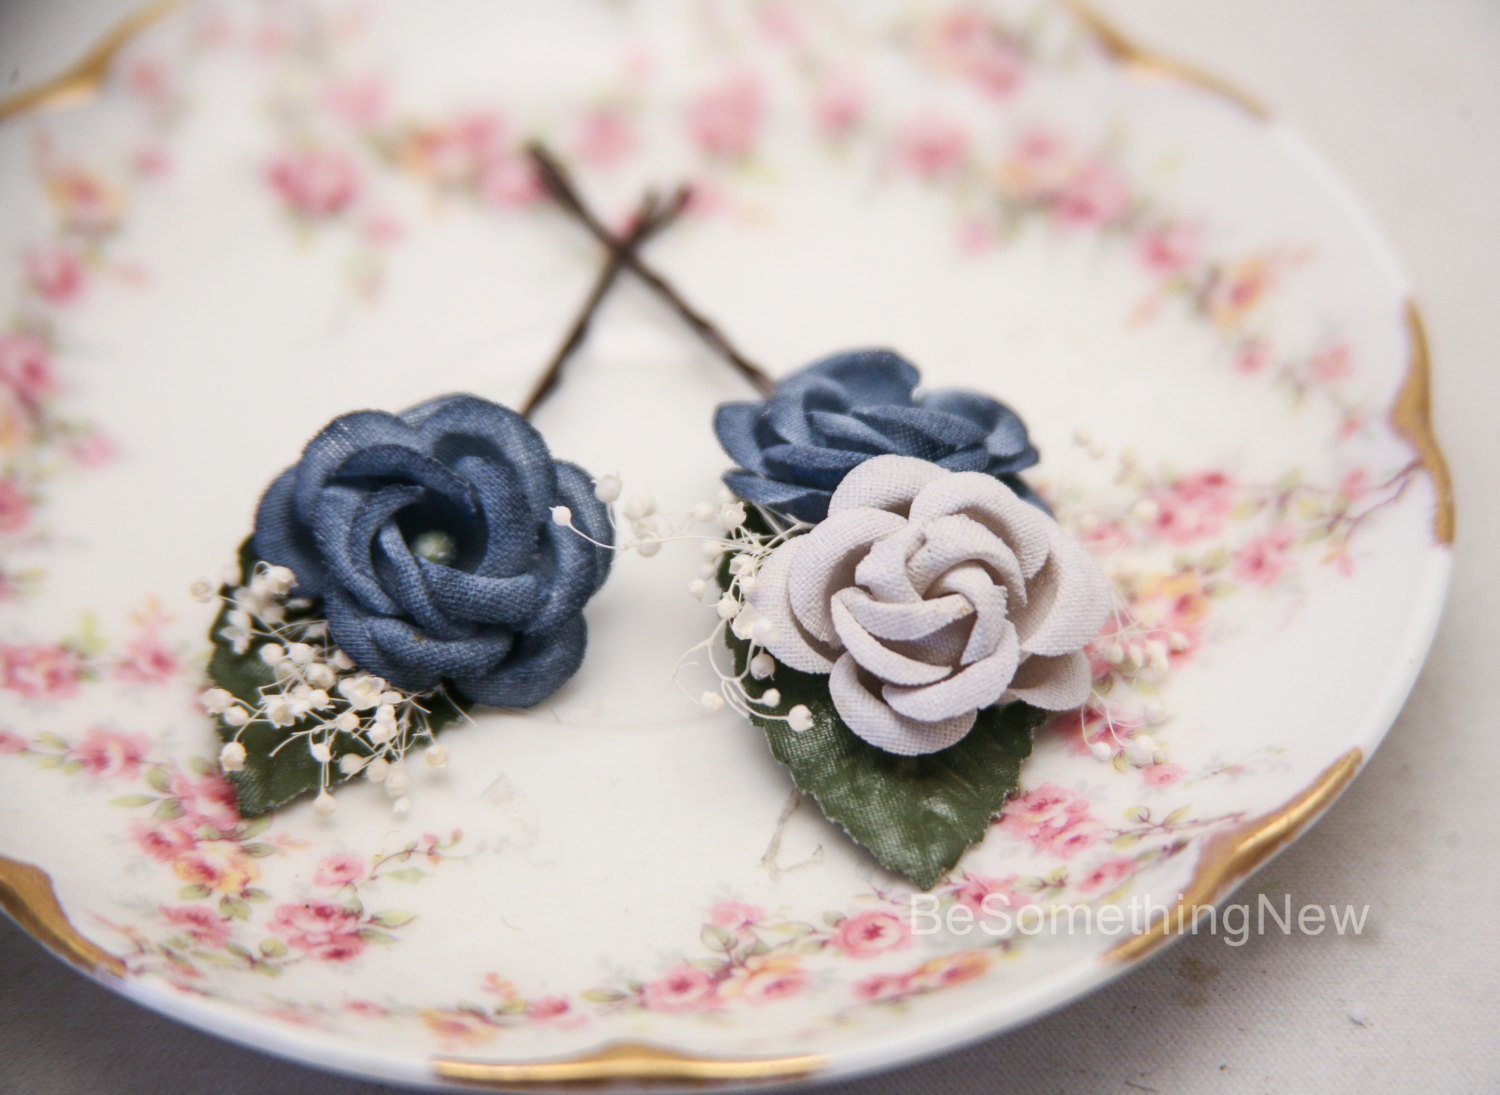 Wedding hair bobby pin set of vintage flowers in blue and gray wedding hair bobby pin set of vintage flowers in blue and gray wedding hair accessory flower bobby pins vintage flower wedding hair clips izmirmasajfo